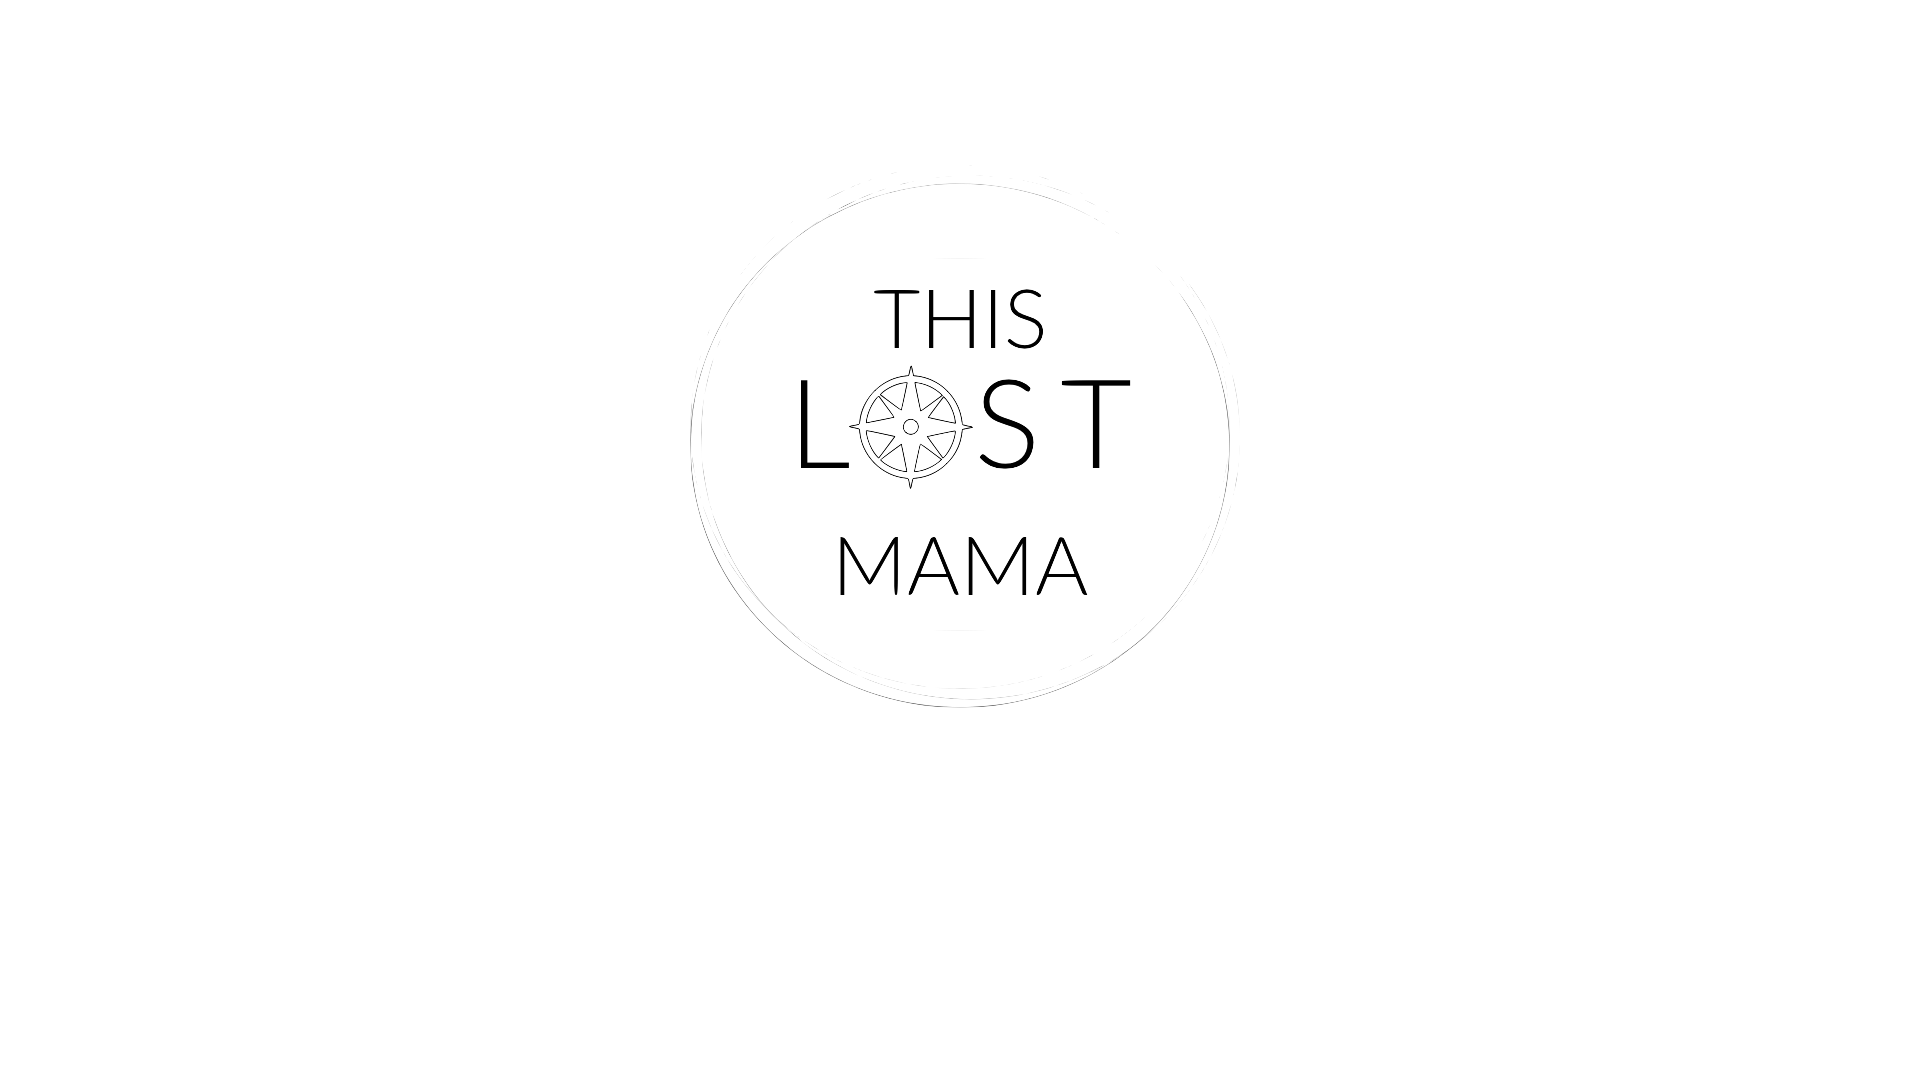 this lost mama text.001